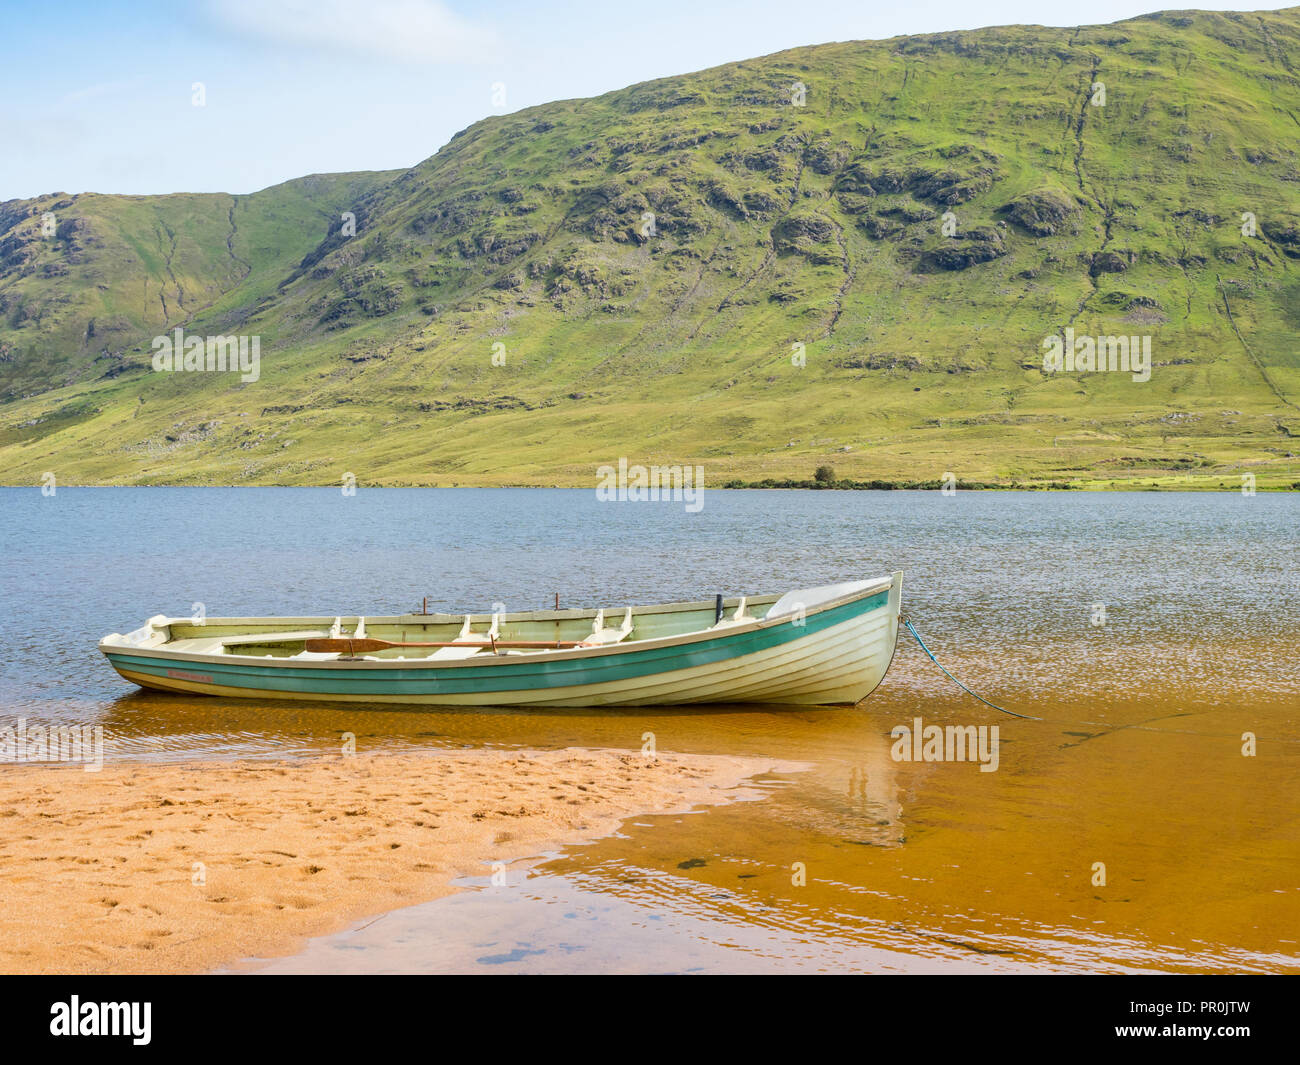 A boat on the beach at scenic Lake Nafooey in the Connemara region of County Galway in Ireland. Stock Photo